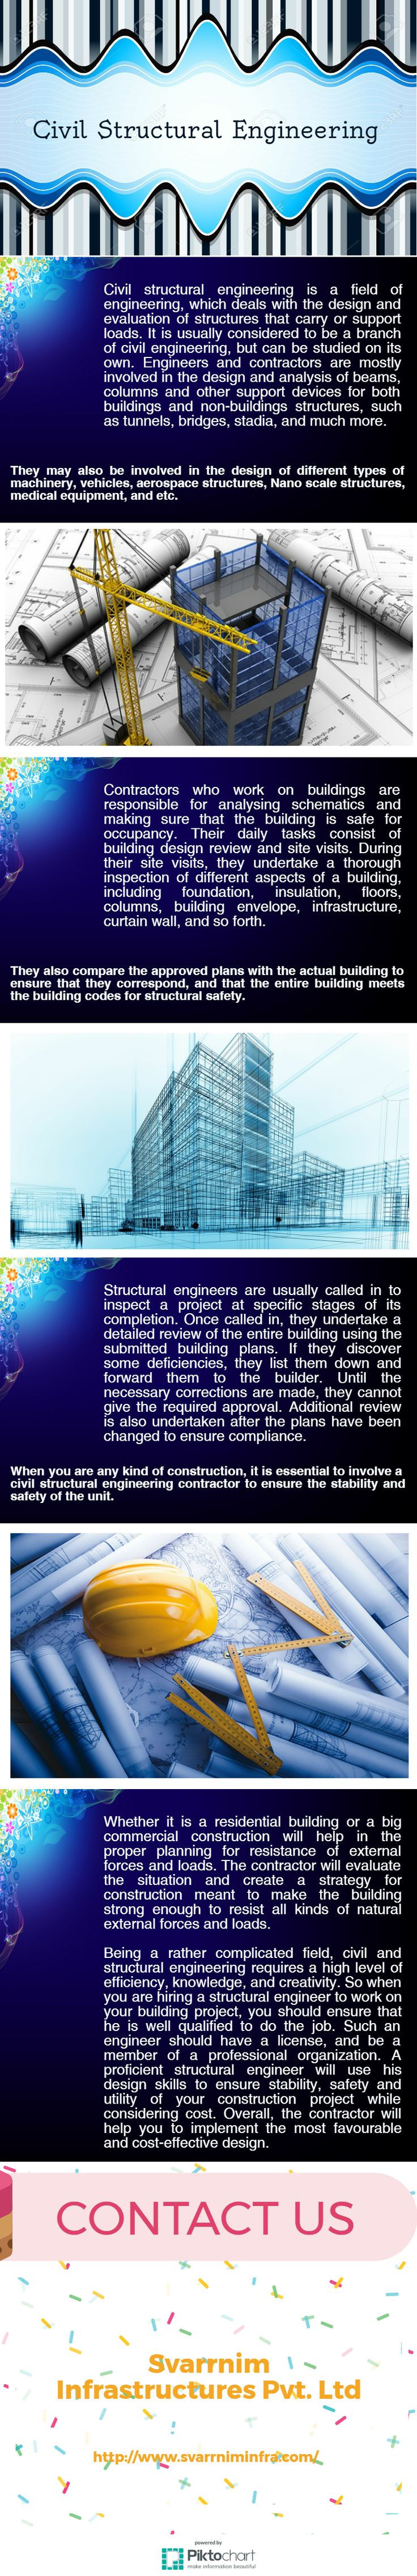 civil structural engineering is a field of engineering which deals with the design and evaluation